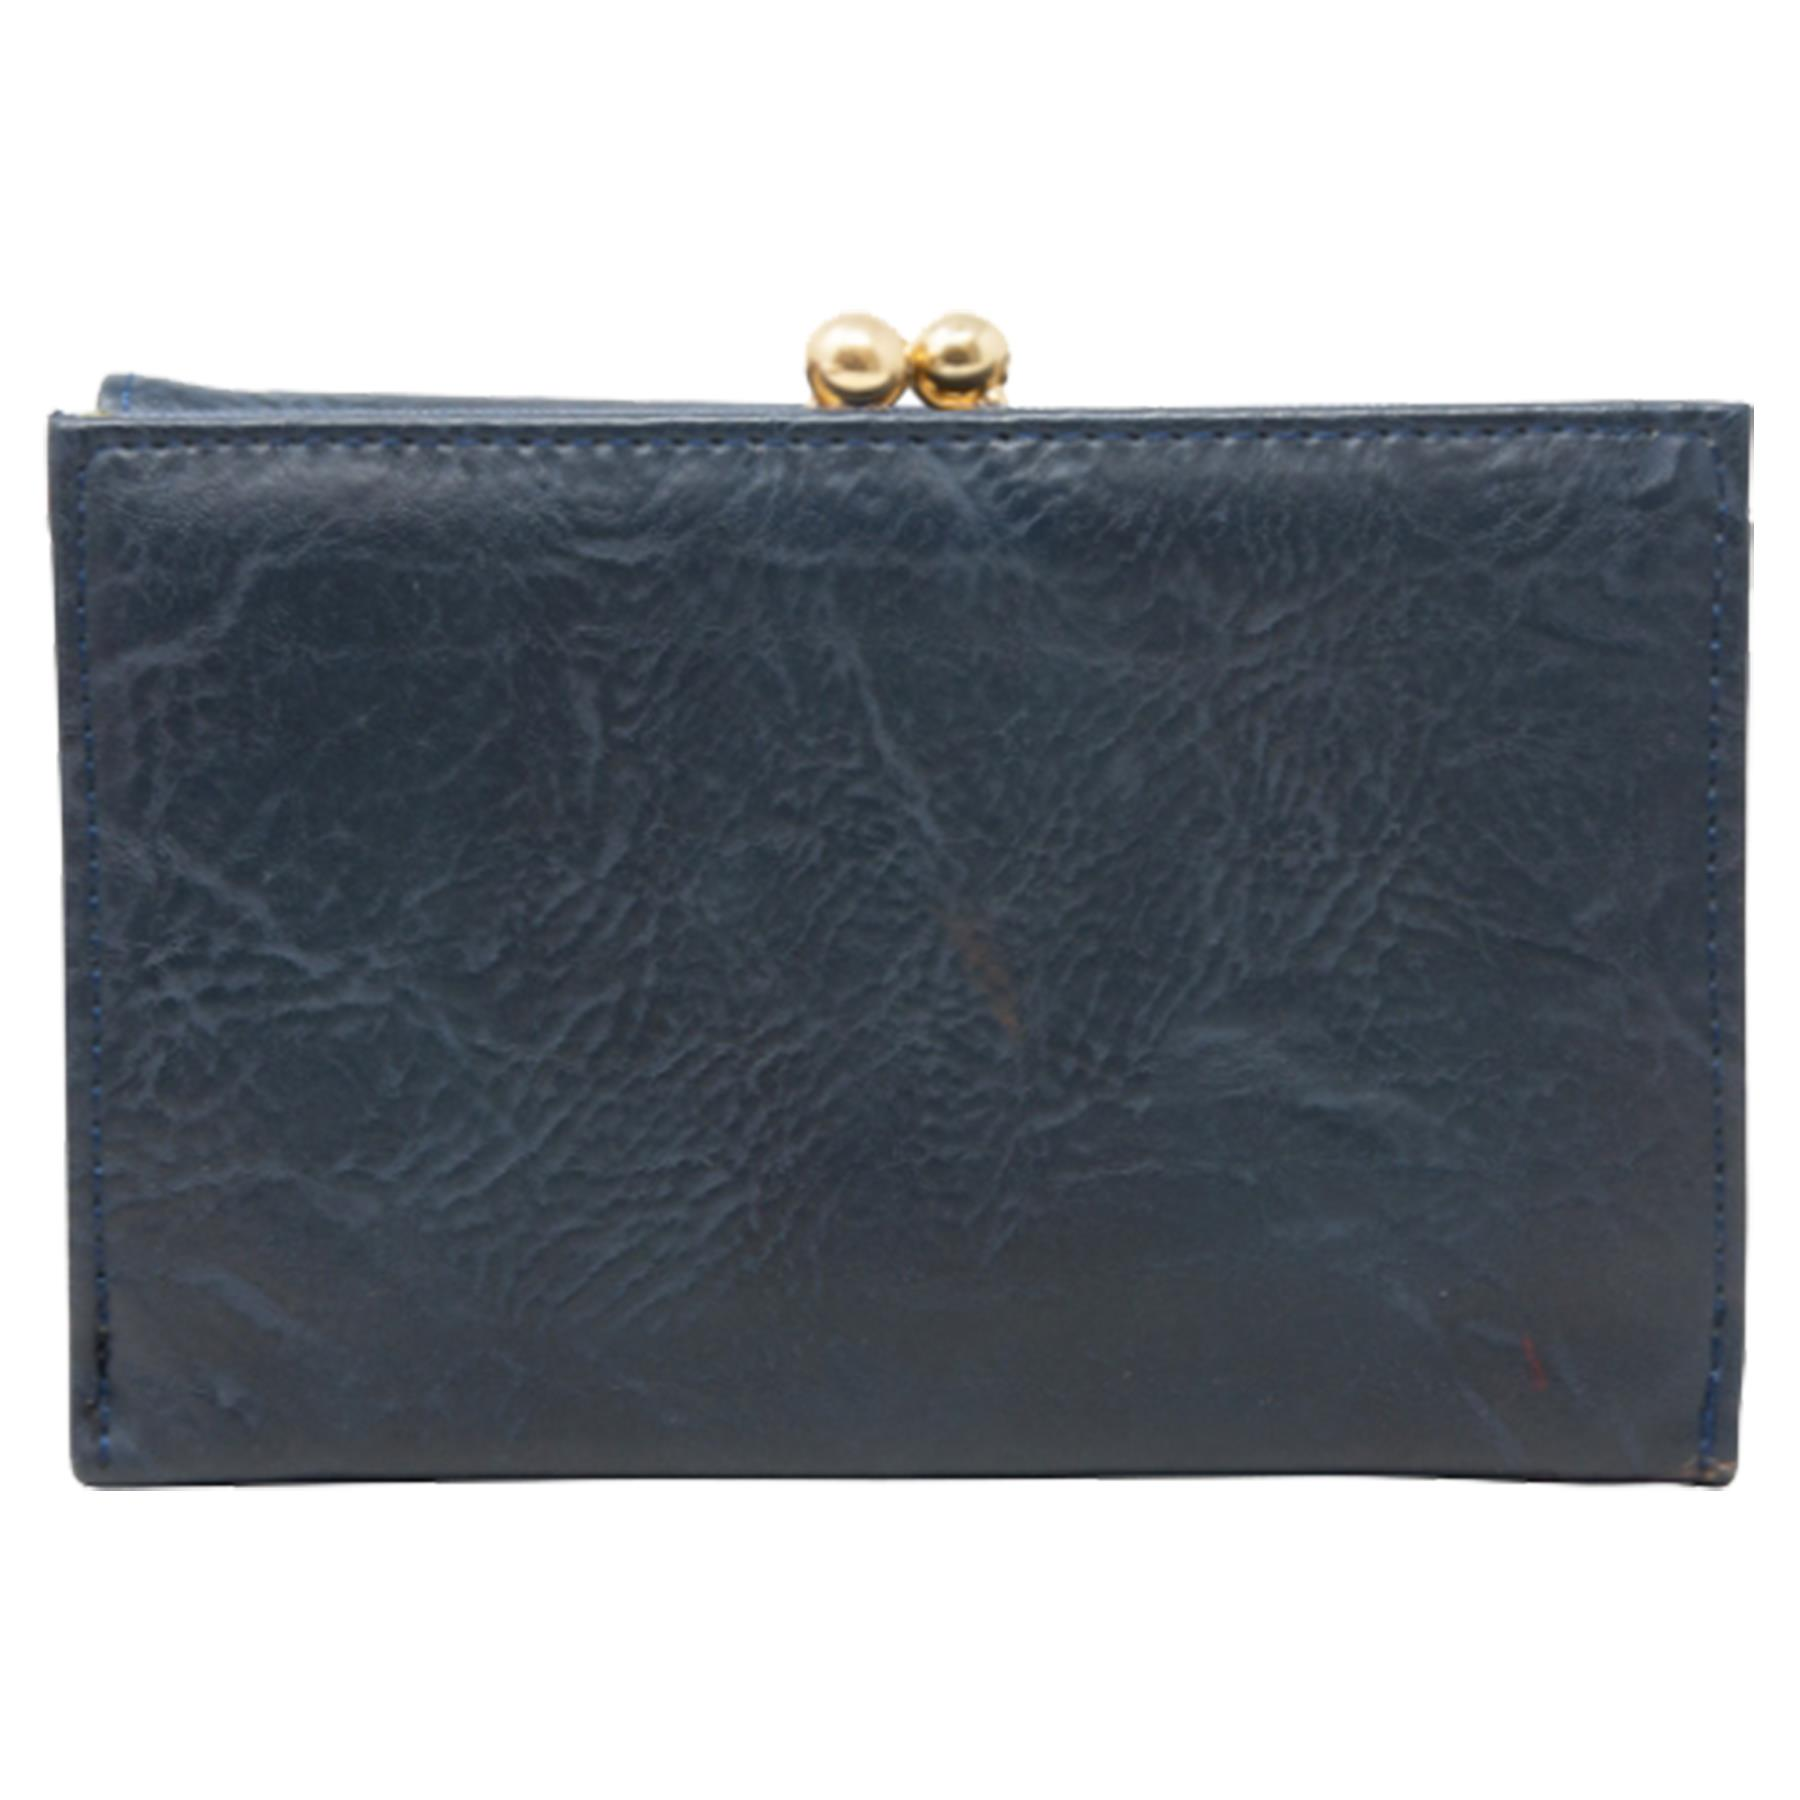 New-Synthetic-Leather-Kiss-Lock-Compartment-Ladies-Casual-Wallet-Purse thumbnail 8